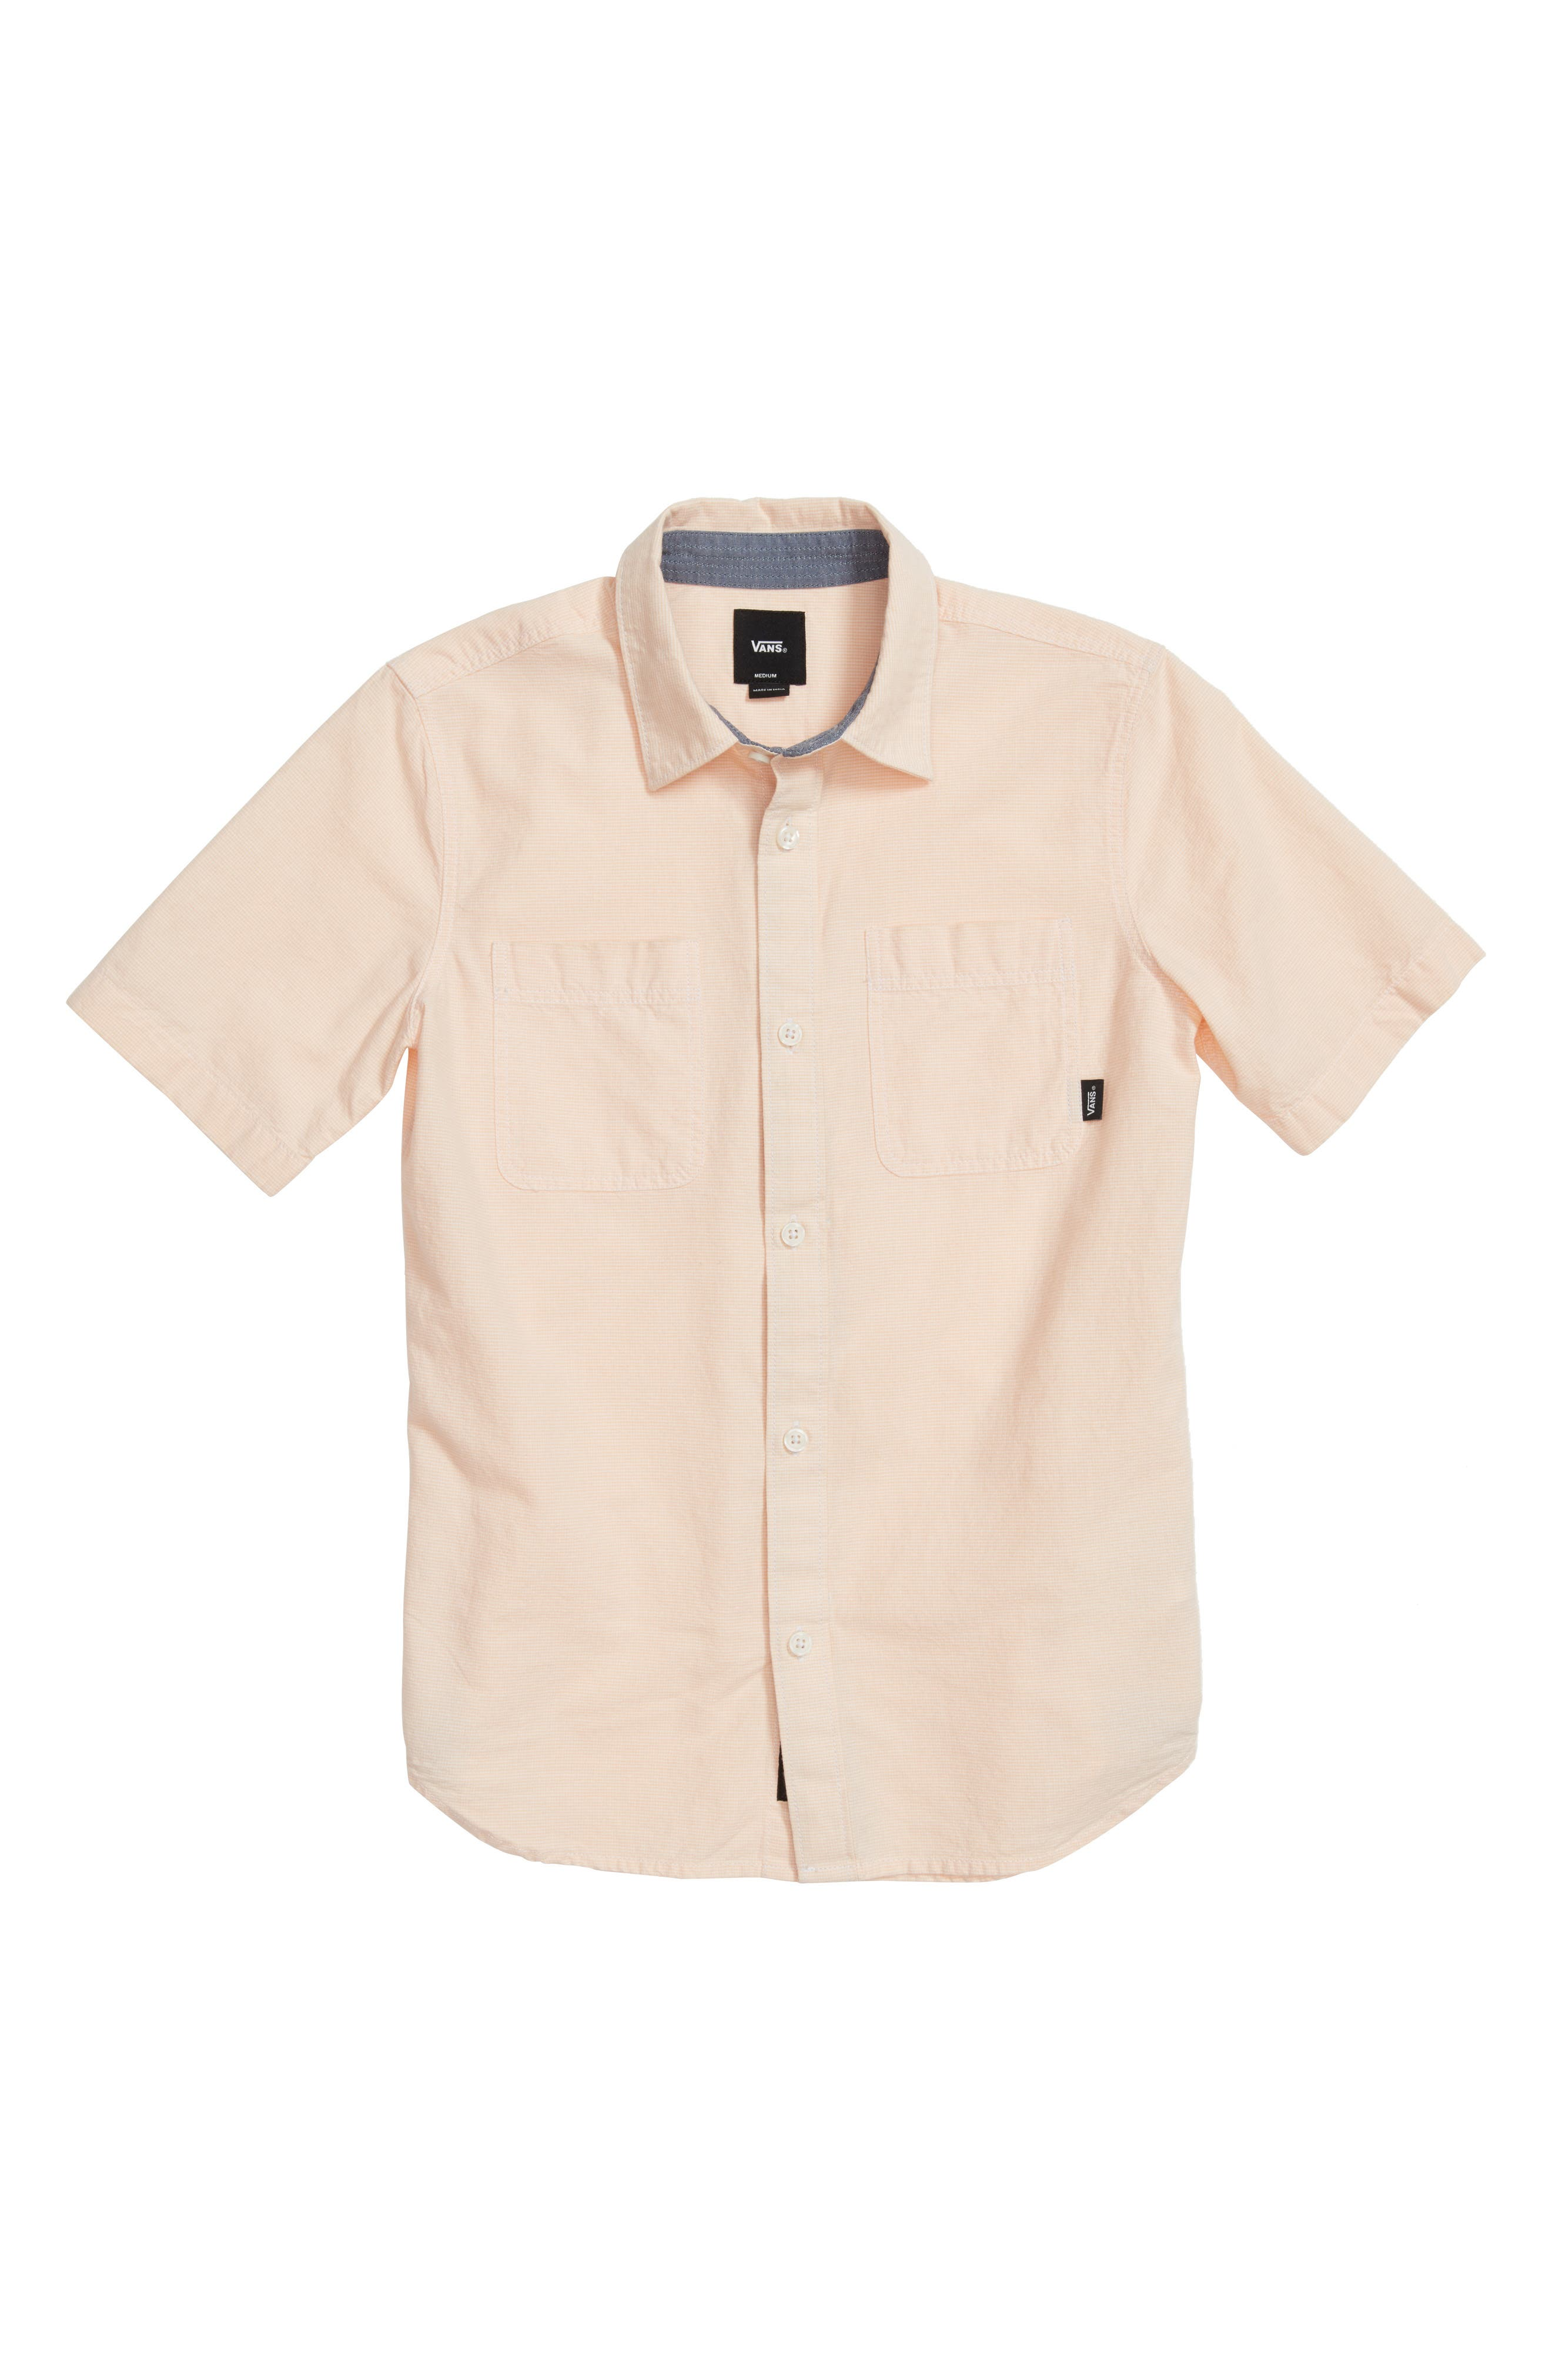 Main Image - Vans Wexford Woven Shirt (Big Boys)